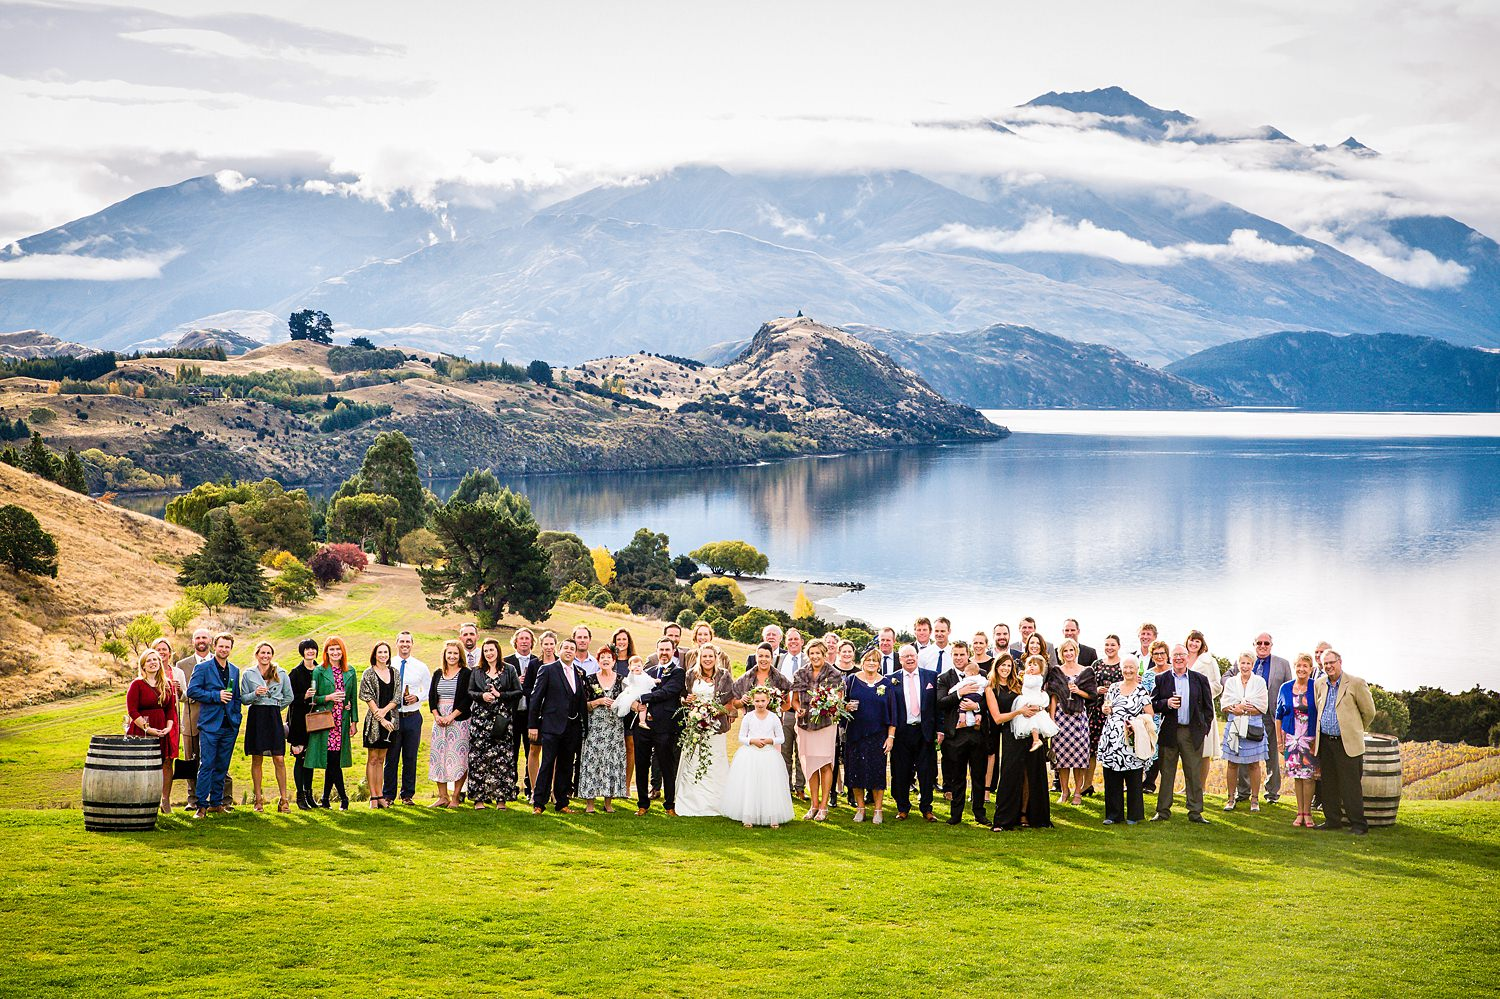 rippon-wedding-photography-17.jpg